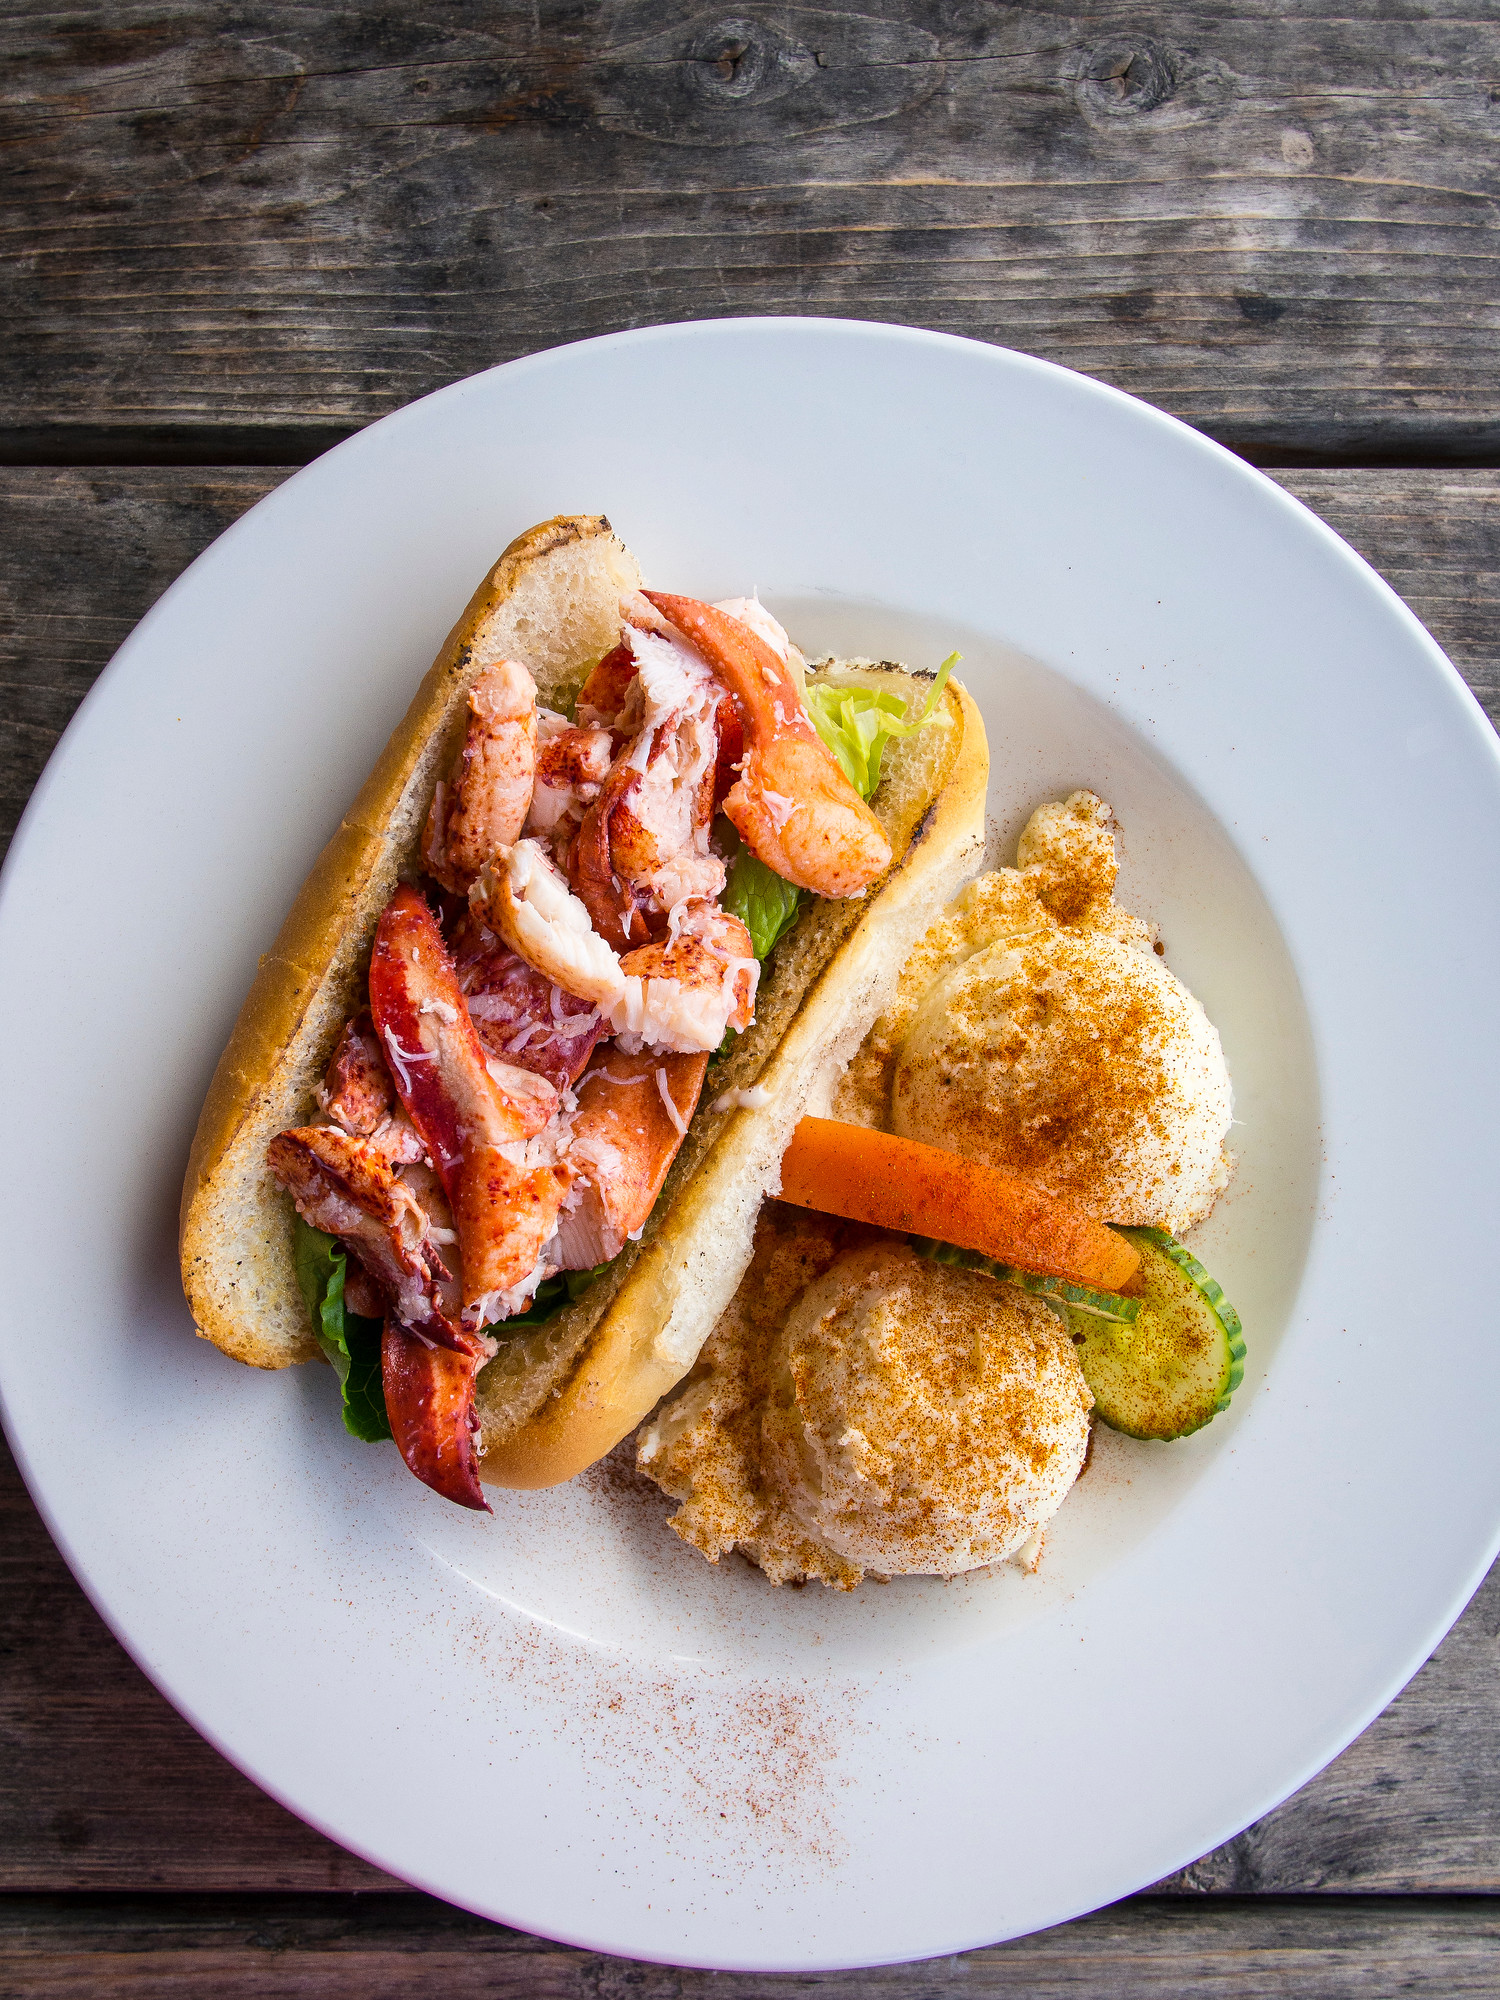 Where to eat in PEI: Don't miss the lobster barn in Victoria by the Sea for their lobster roll.